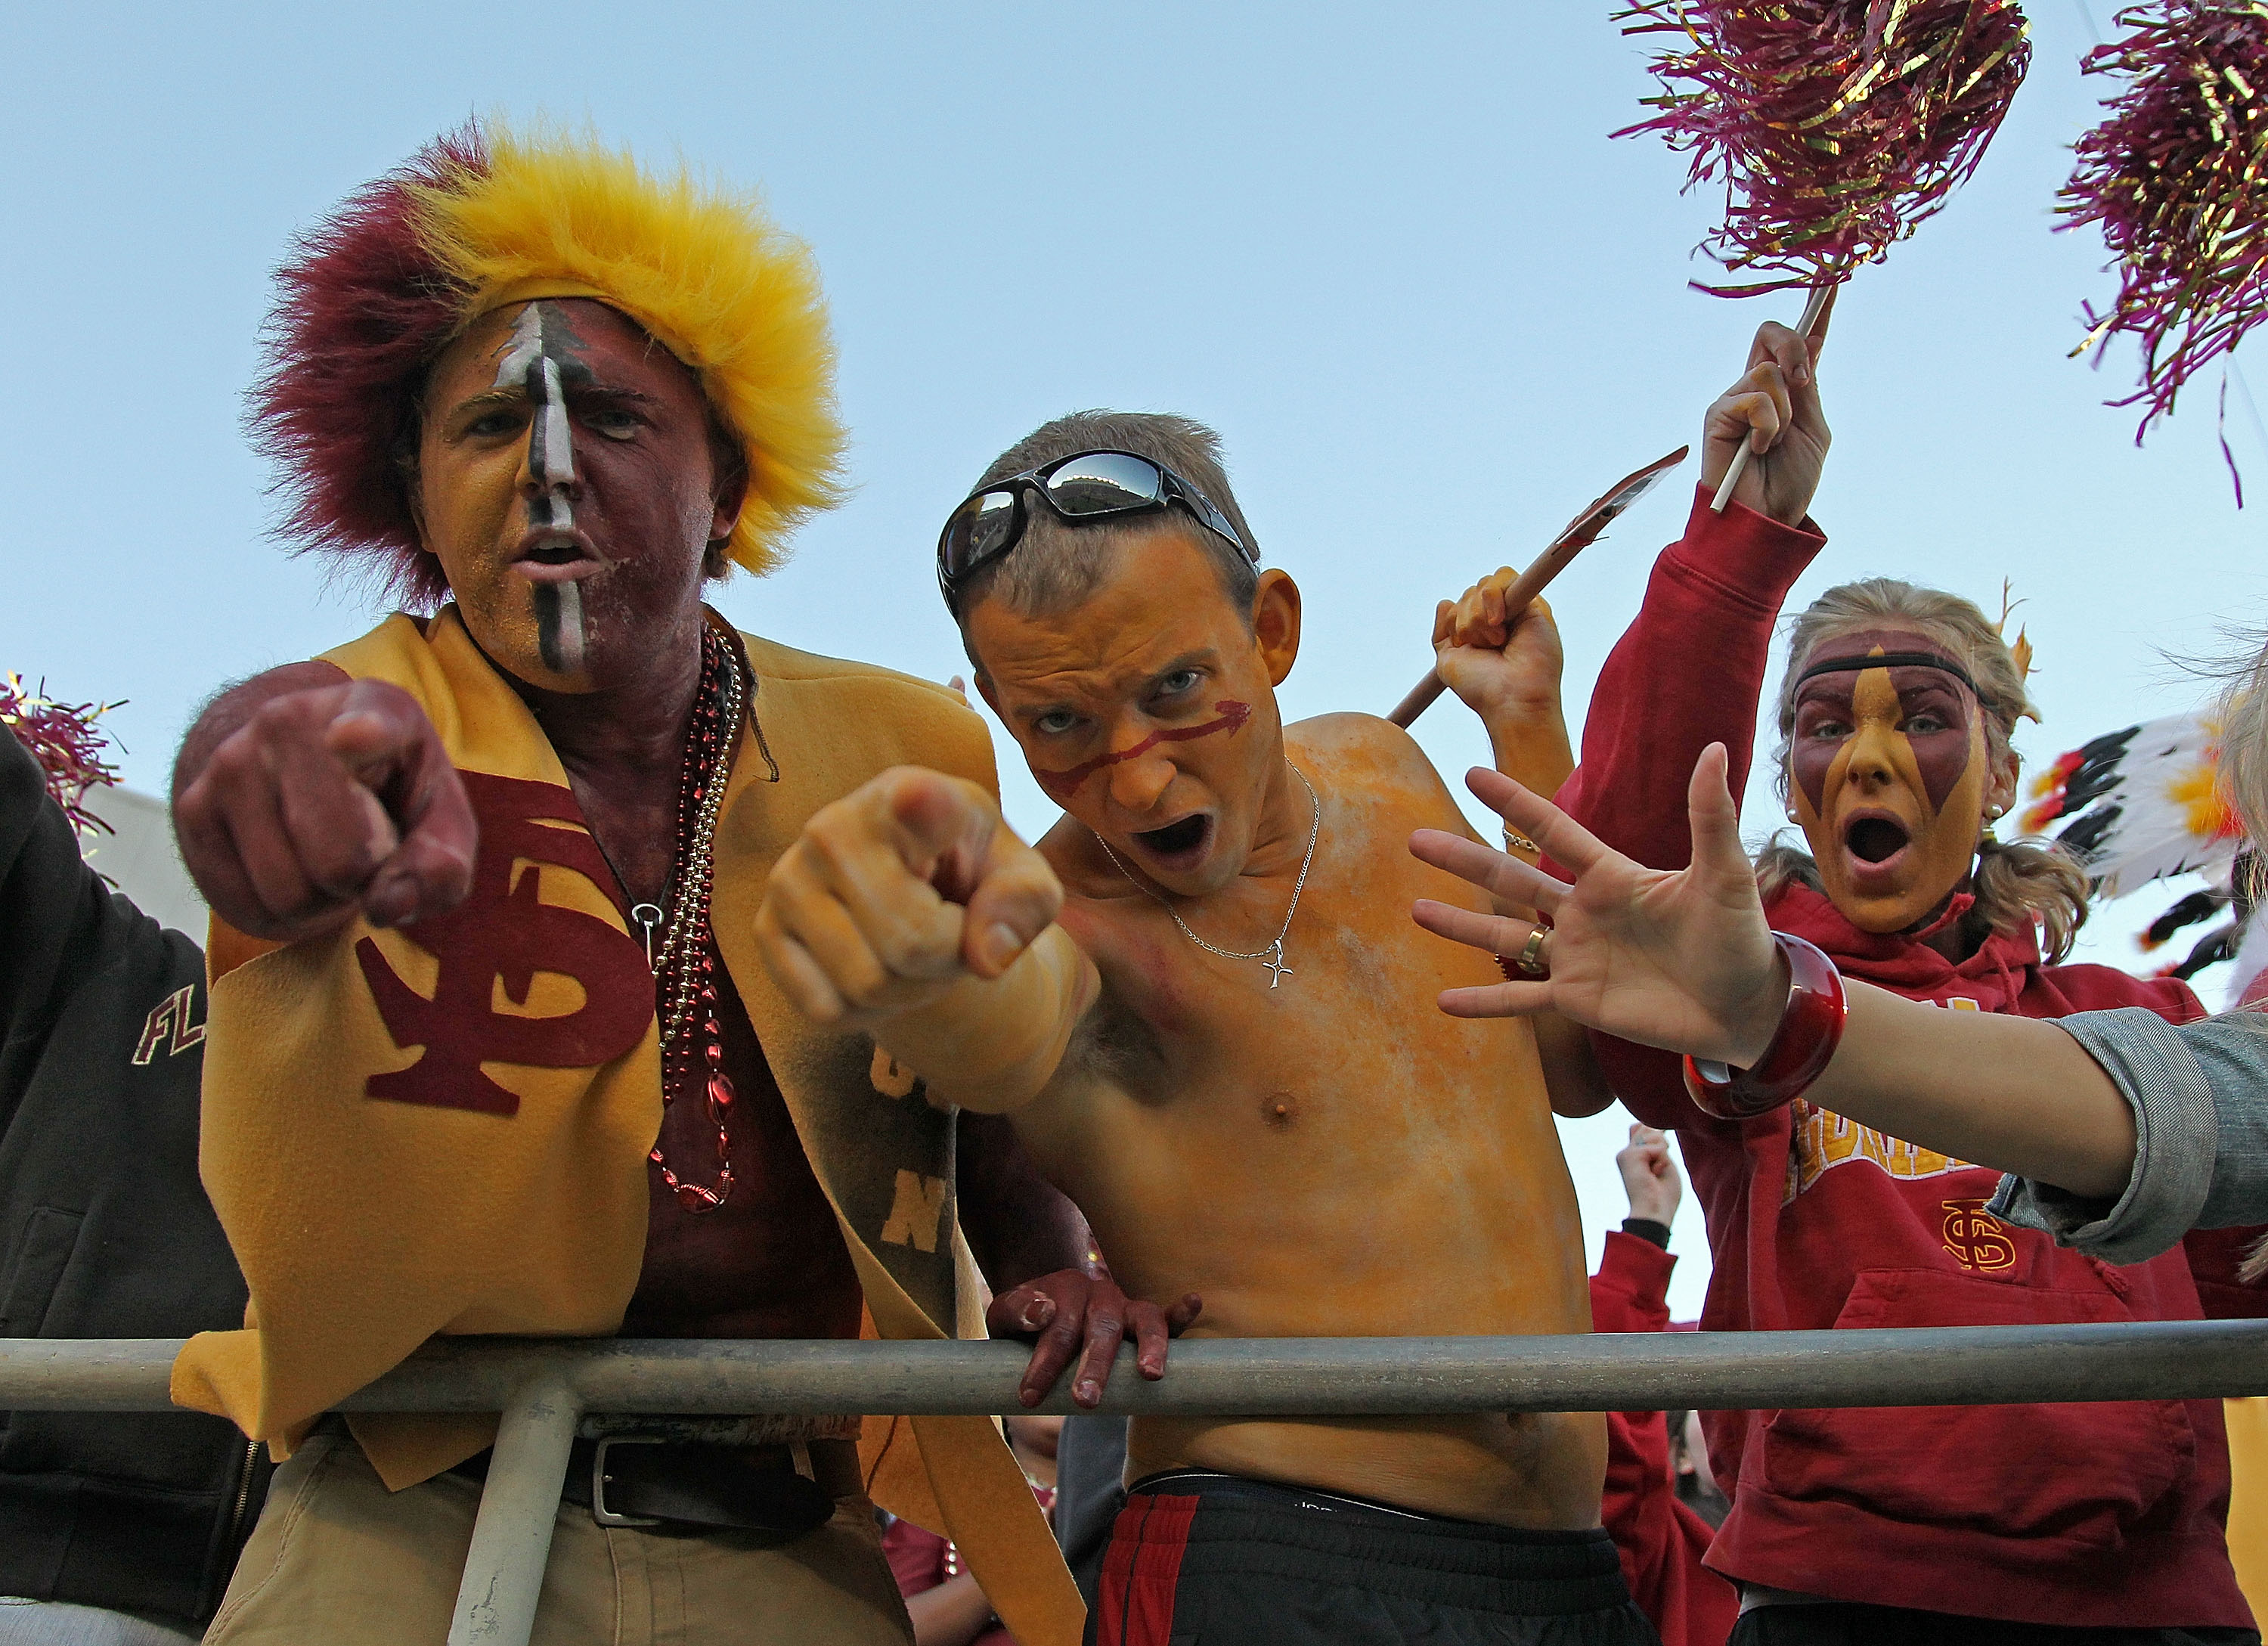 TALLAHASSEE, FL - NOVEMBER 27:  Florida State Seminoles fans celebrate after a touchdown during a game against the Florida Gators at Doak Campbell Stadium on November 27, 2010 in Tallahassee, Florida.  (Photo by Mike Ehrmann/Getty Images)